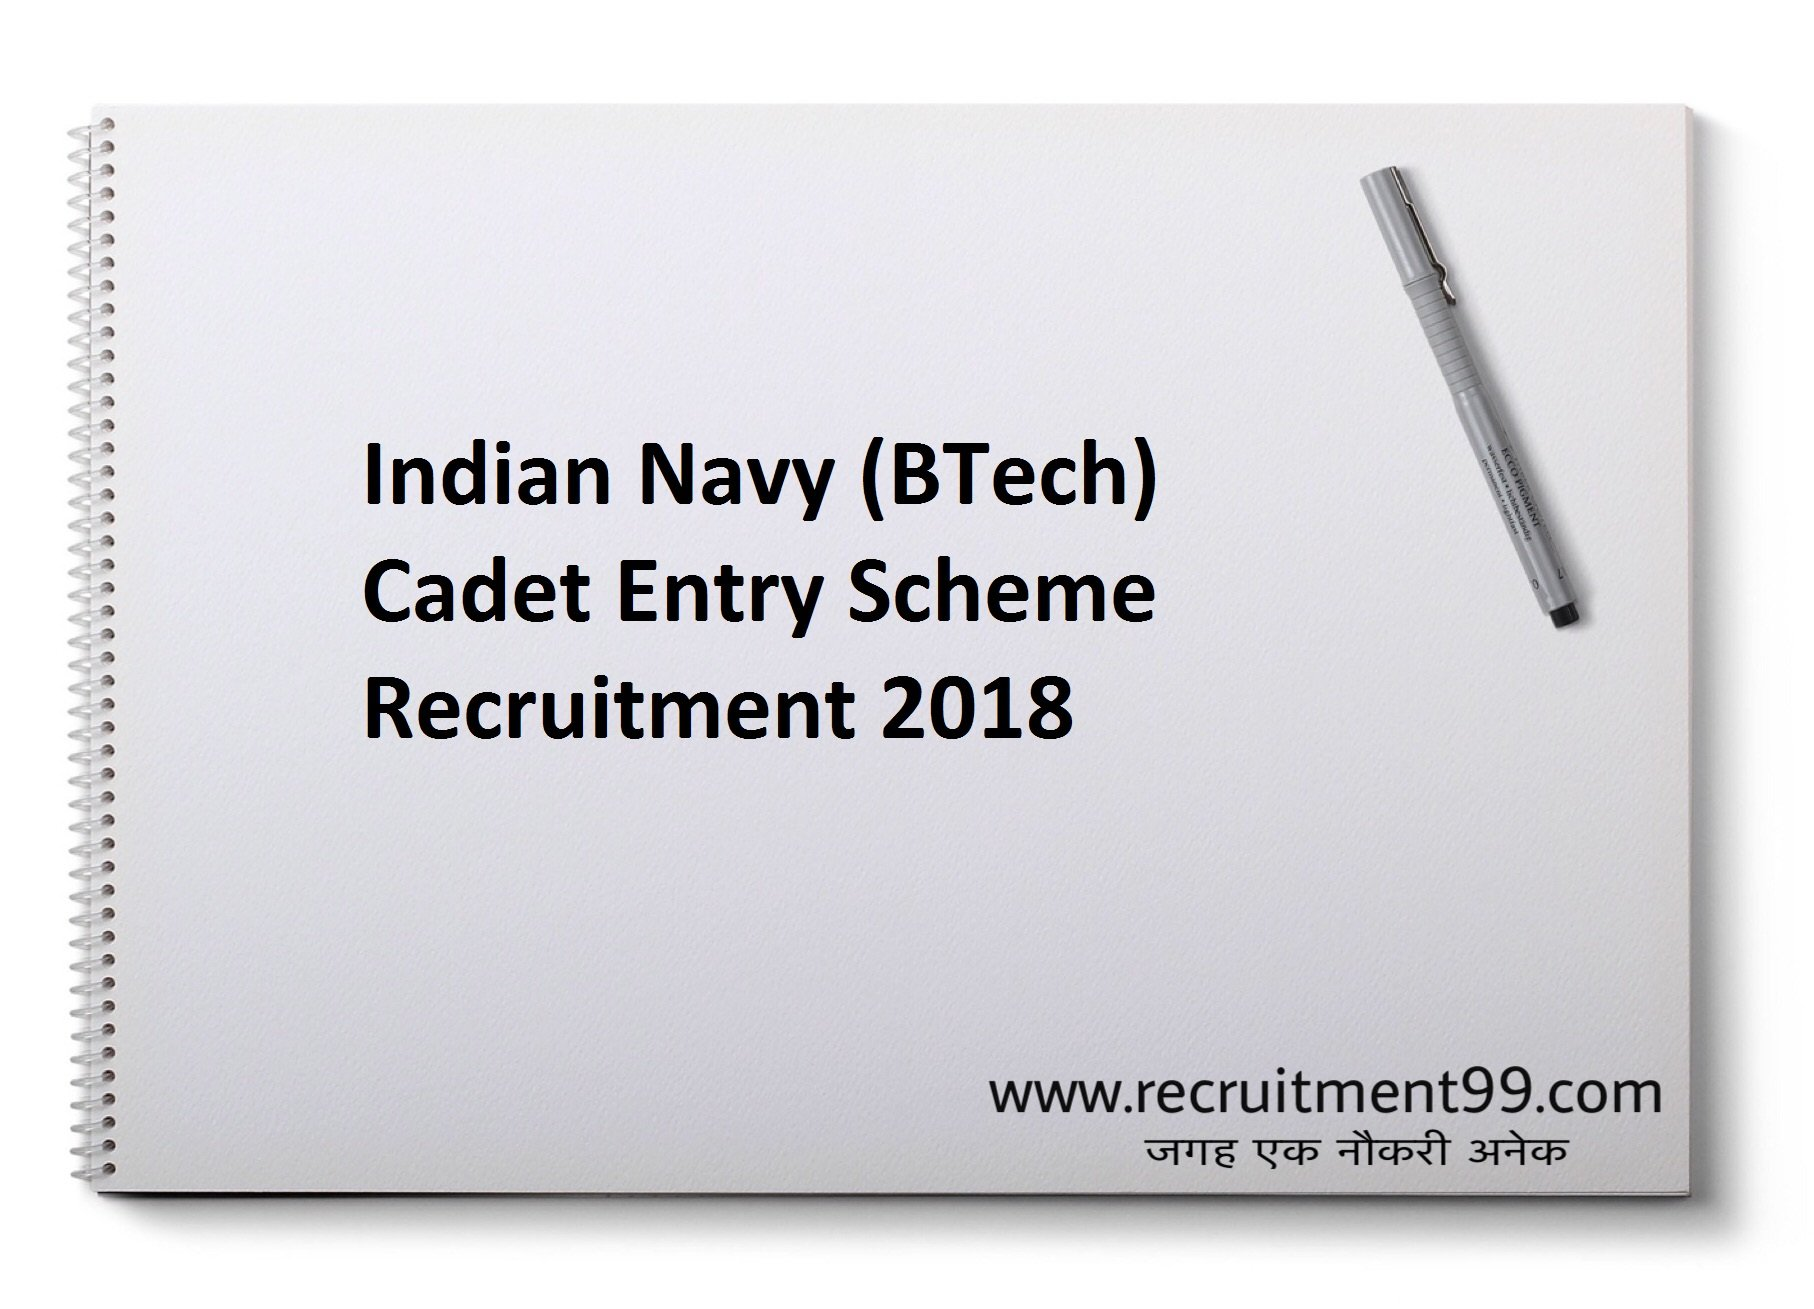 Indian Navy (BTech) Cadet Entry Scheme Admit Card Result 2018